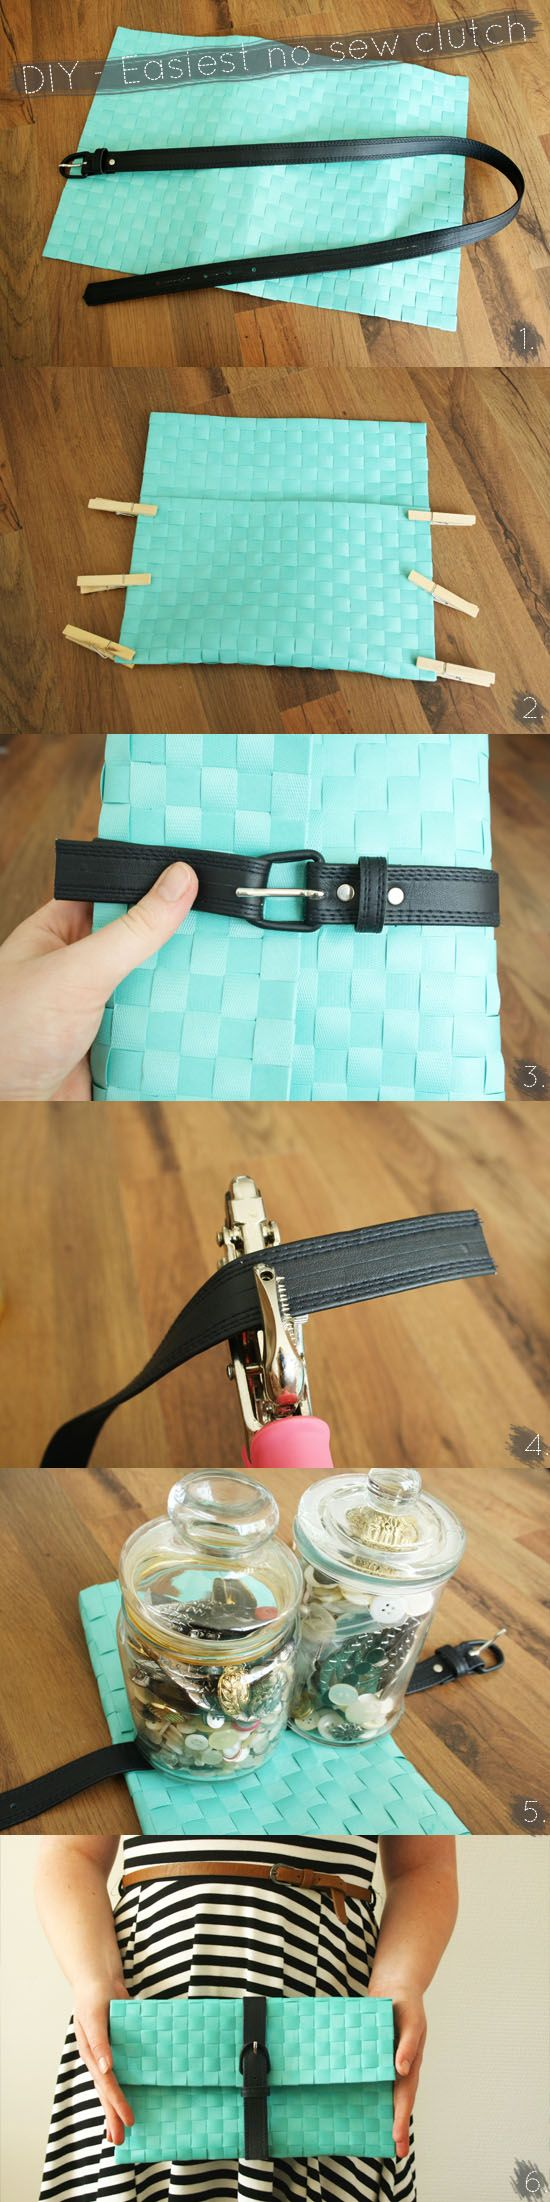 Create the easiest DIY no-sew clutch from a place mat and a thrifted belt: Idea, Easiest Diy, Diy'S, Diy Clutch, Clutches, Diy Craft, No Sew Clutch